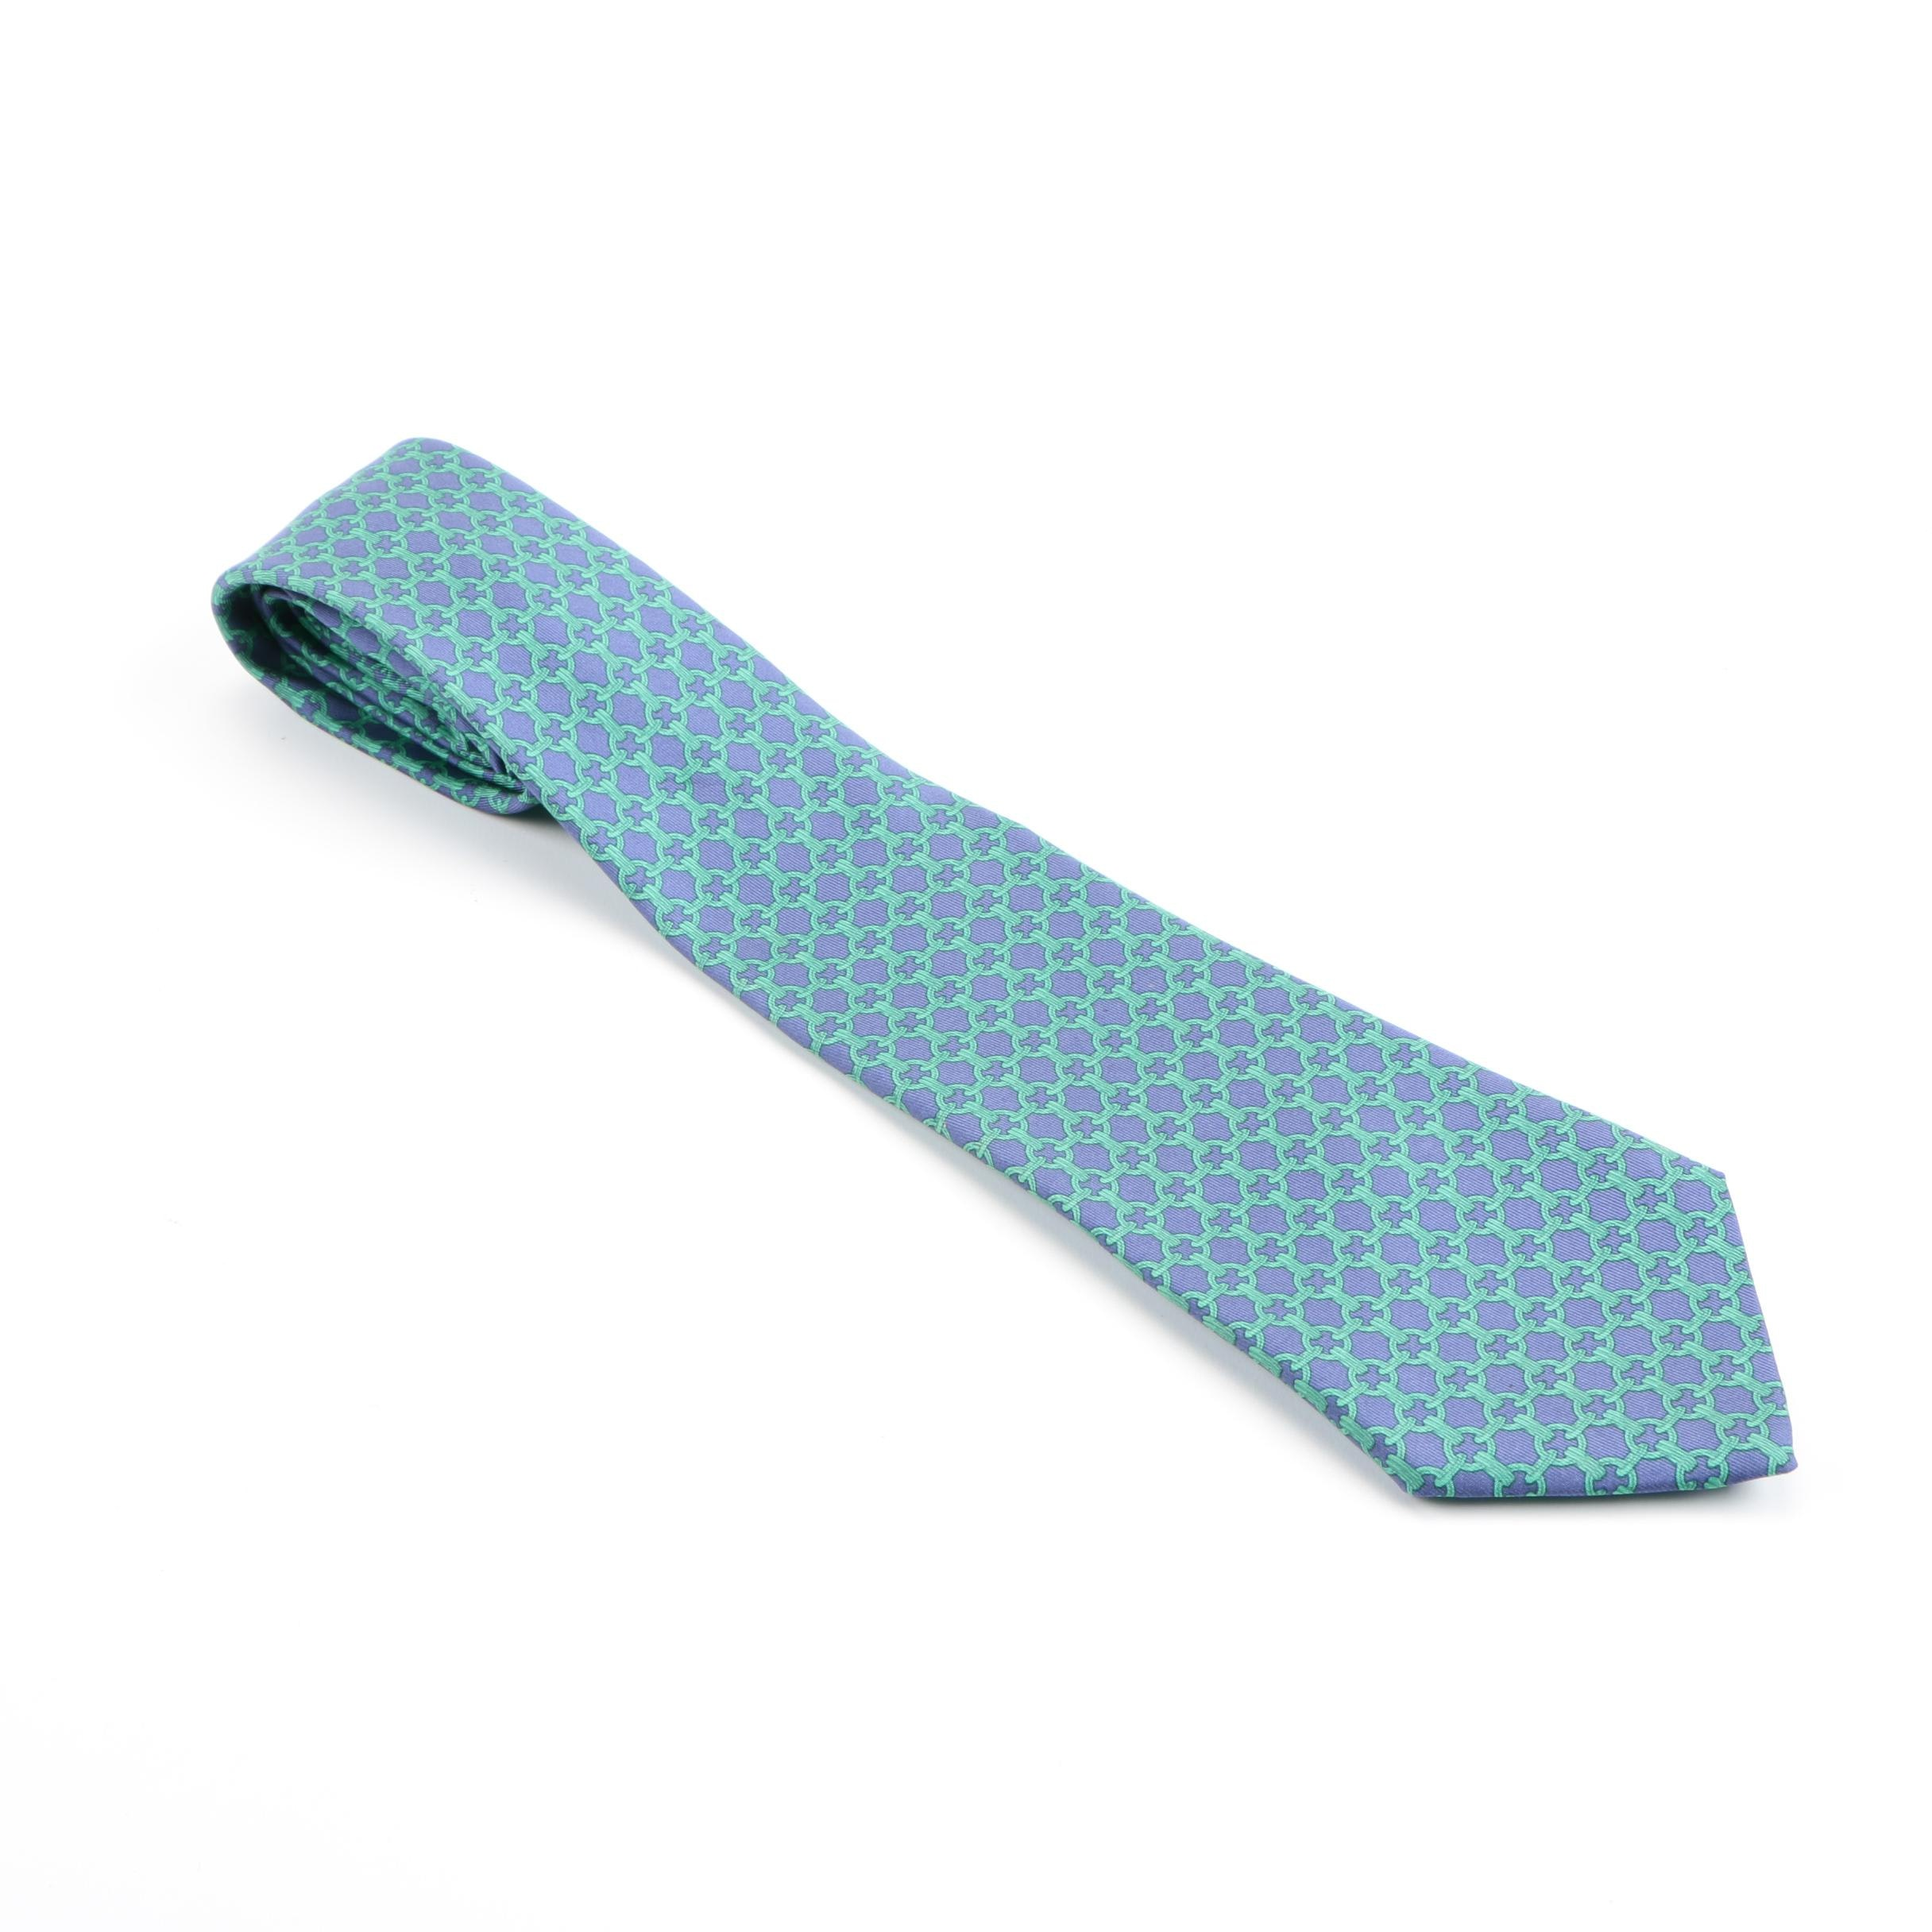 Hermès Green and Blue Bridal Chain Link Silk Tie